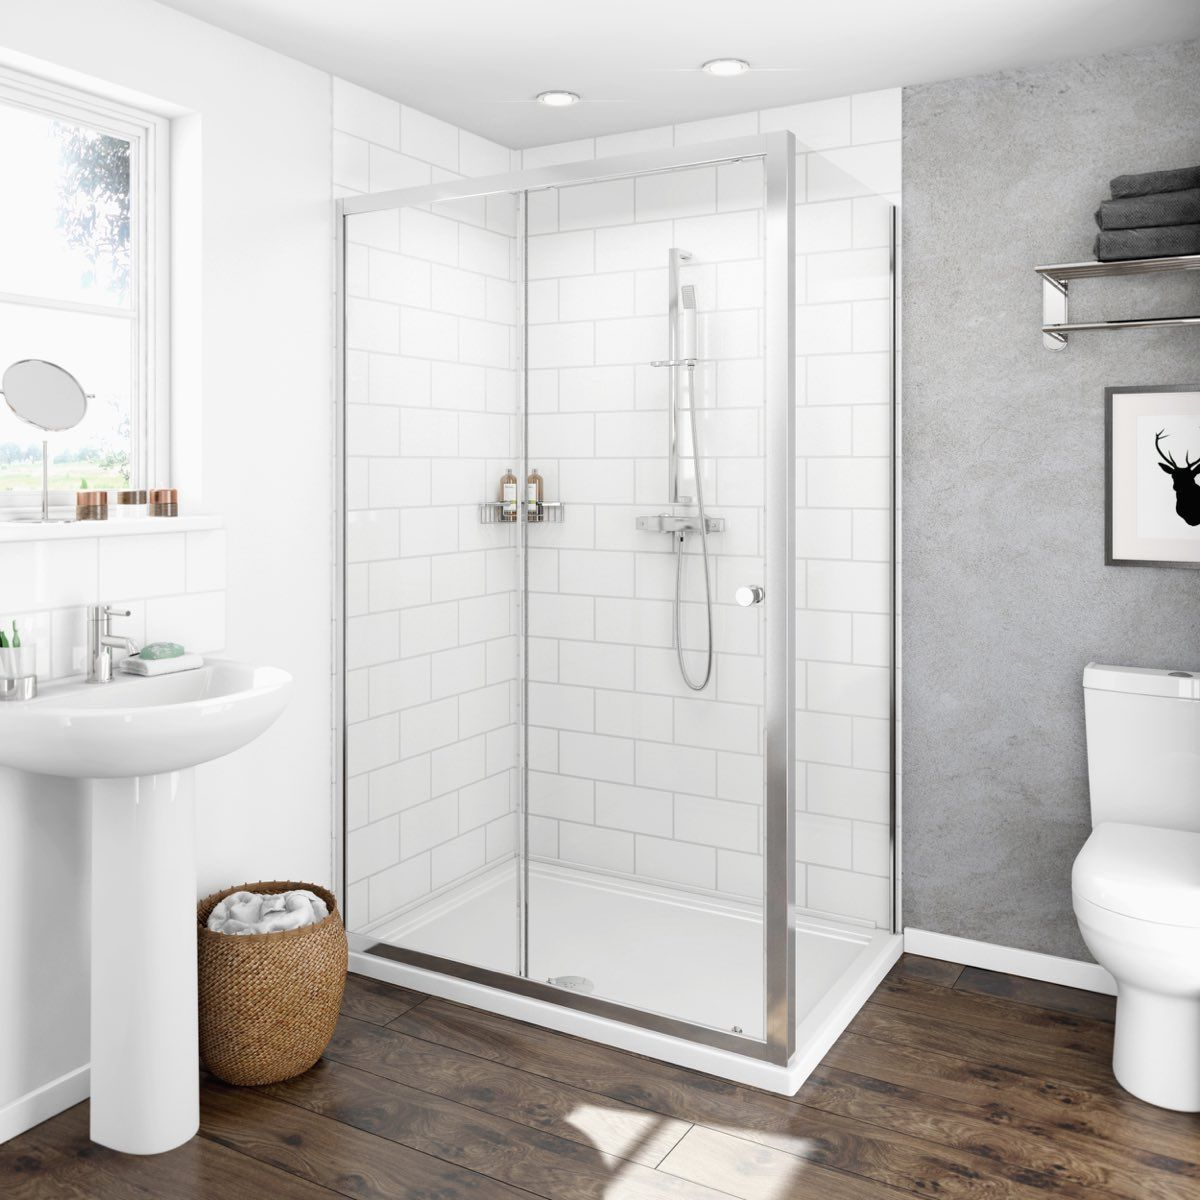 Clarity 4mm Sliding Door Shower Enclosure Shower Doors Shower Enclosure Rectangular Shower Enclosures